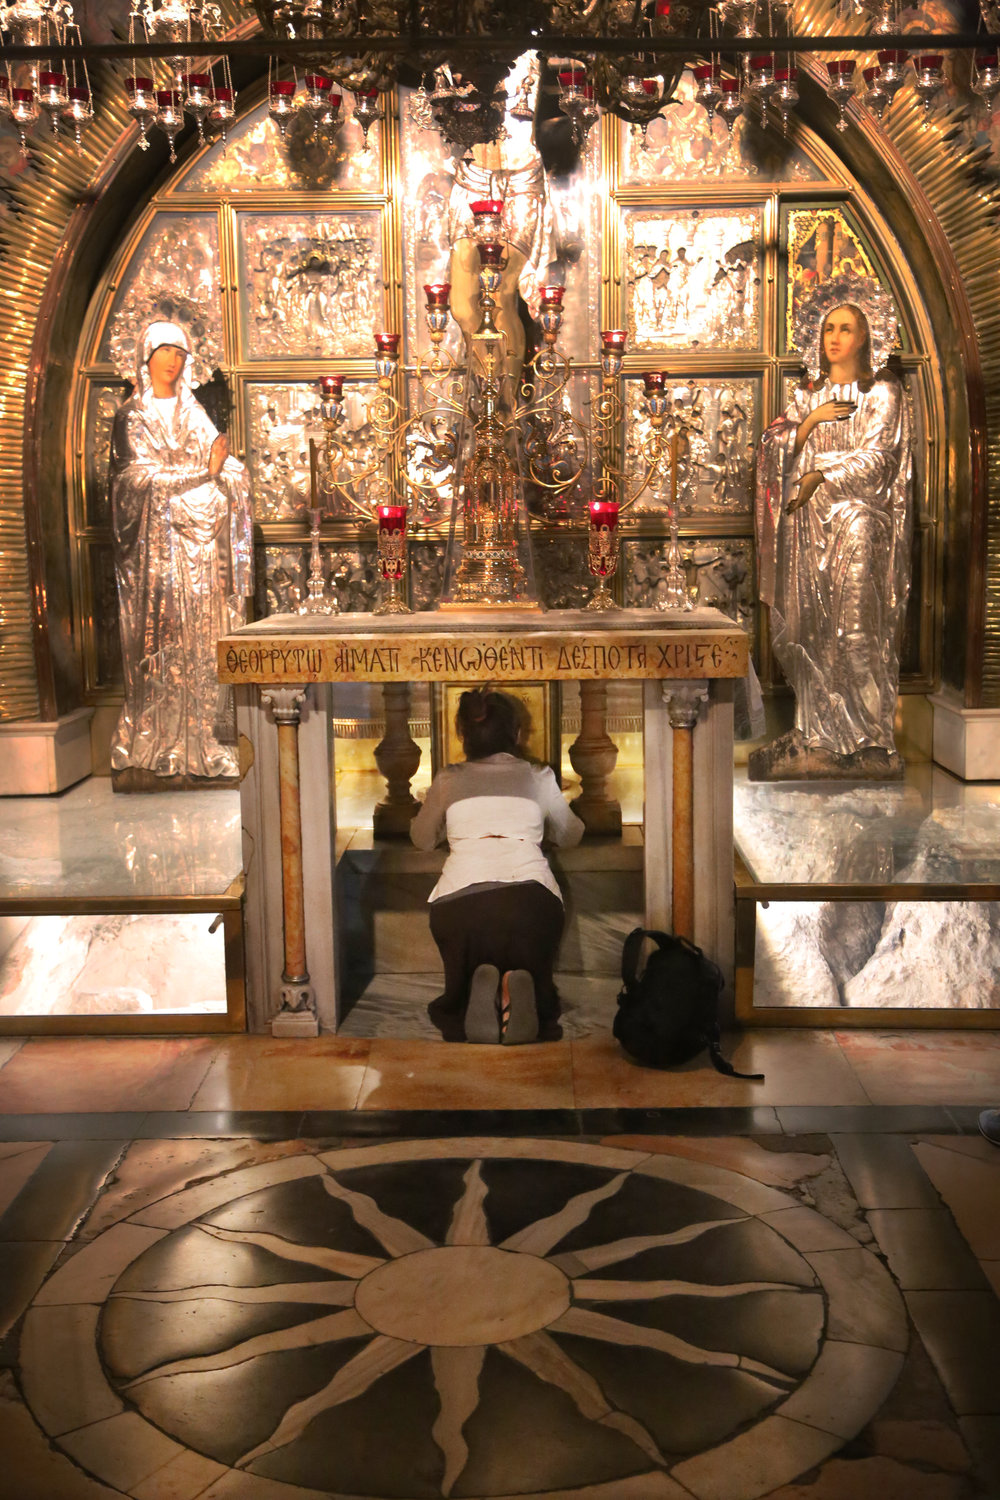 At The Altar of the Crucifixion